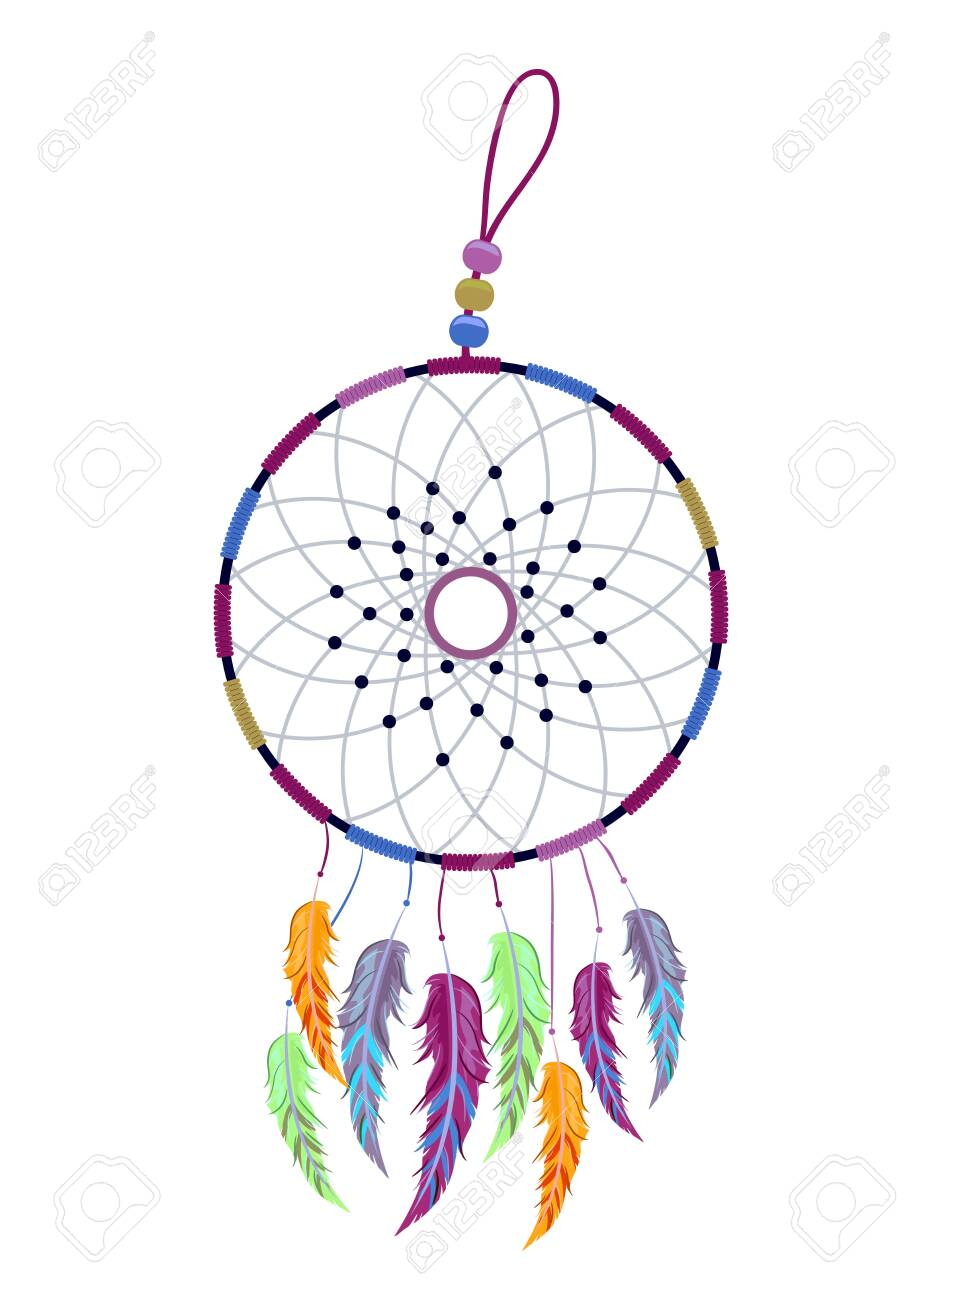 - Illustration Of A Dream Catcher In Different Colors With Beads